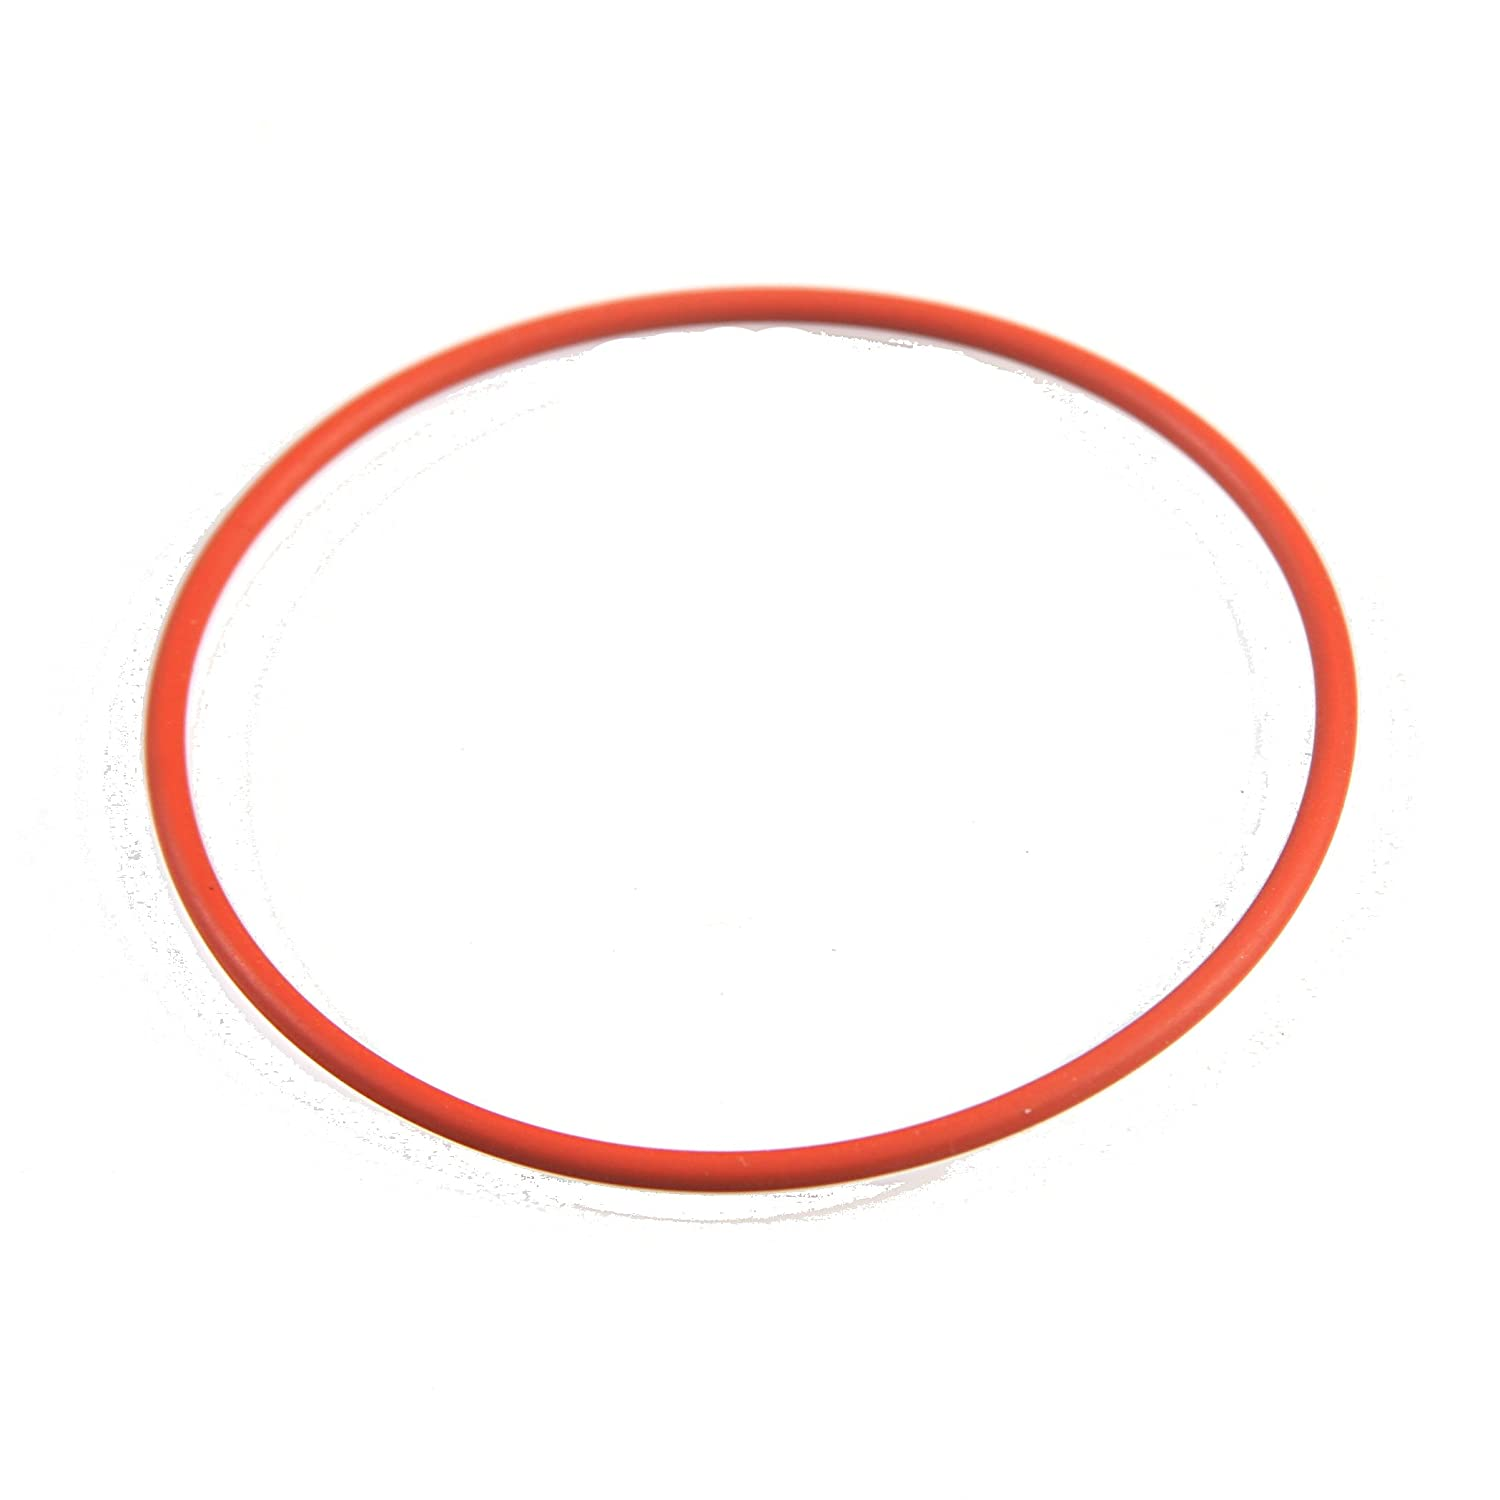 Sterling Seal ORSIL177x1000 Number-177 Standard Silicone O-Ring has Excellent Resistance to Oxygen Ozone and Sunlight 9-11//16 OD Sur-Seal Inc. Pack of 1000 9-1//2 ID Pack of 1000 Vinyl Methyl Silicone 9-1//2 ID 9-11//16 OD